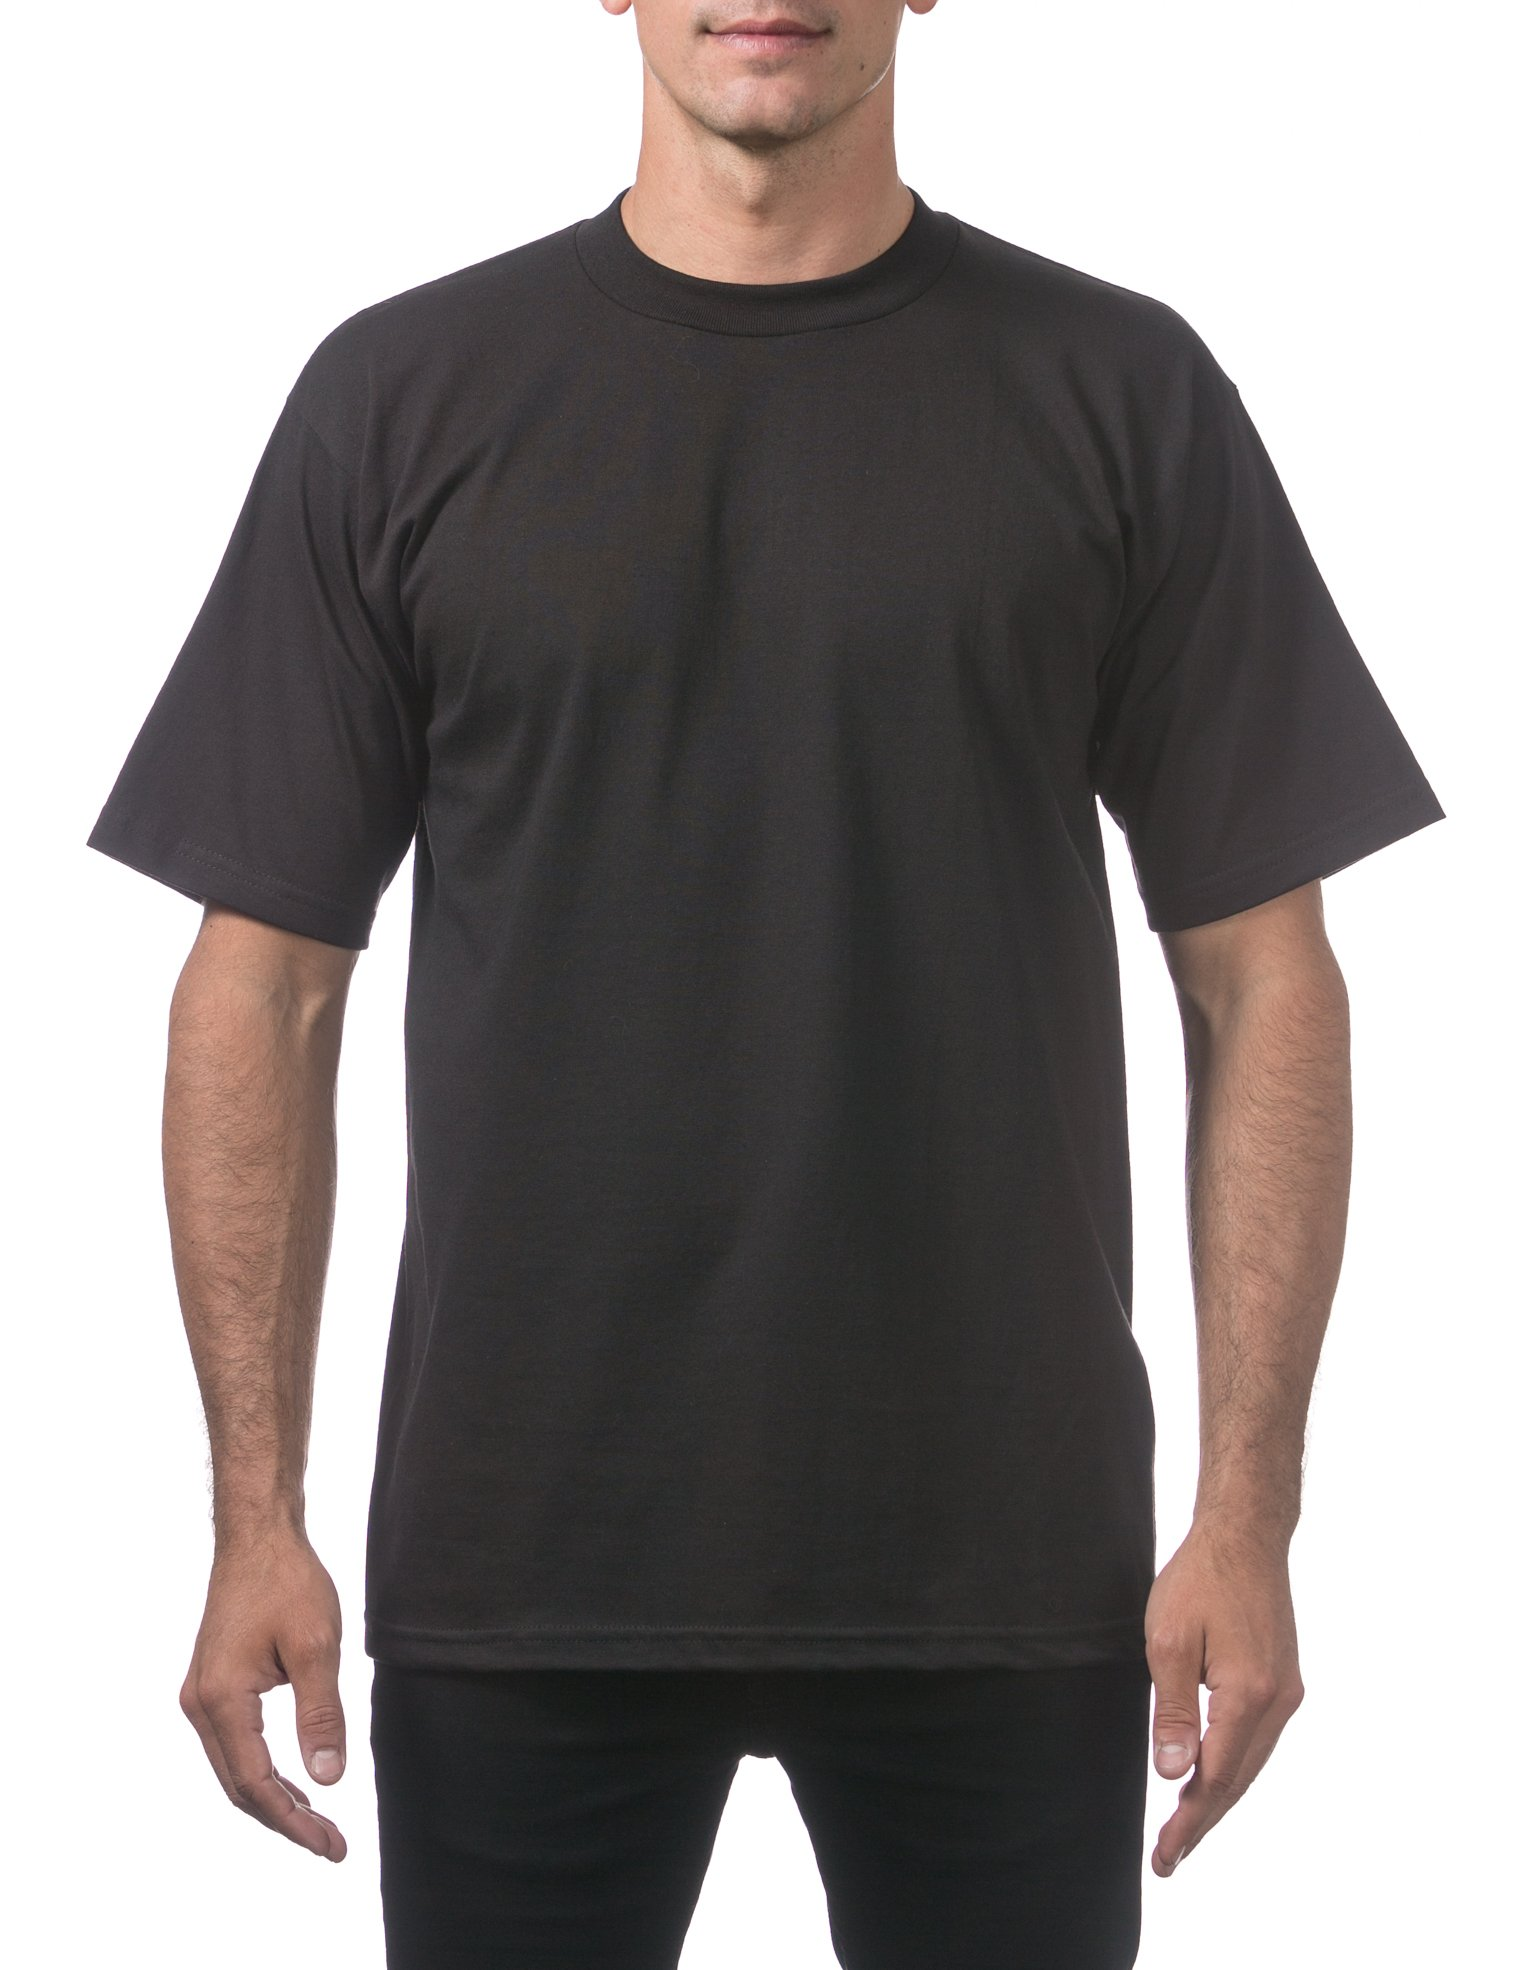 Pro Club Men's Heavyweight Cotton Short Sleeve Crew Neck T-Shirt, 2X-Large, Black